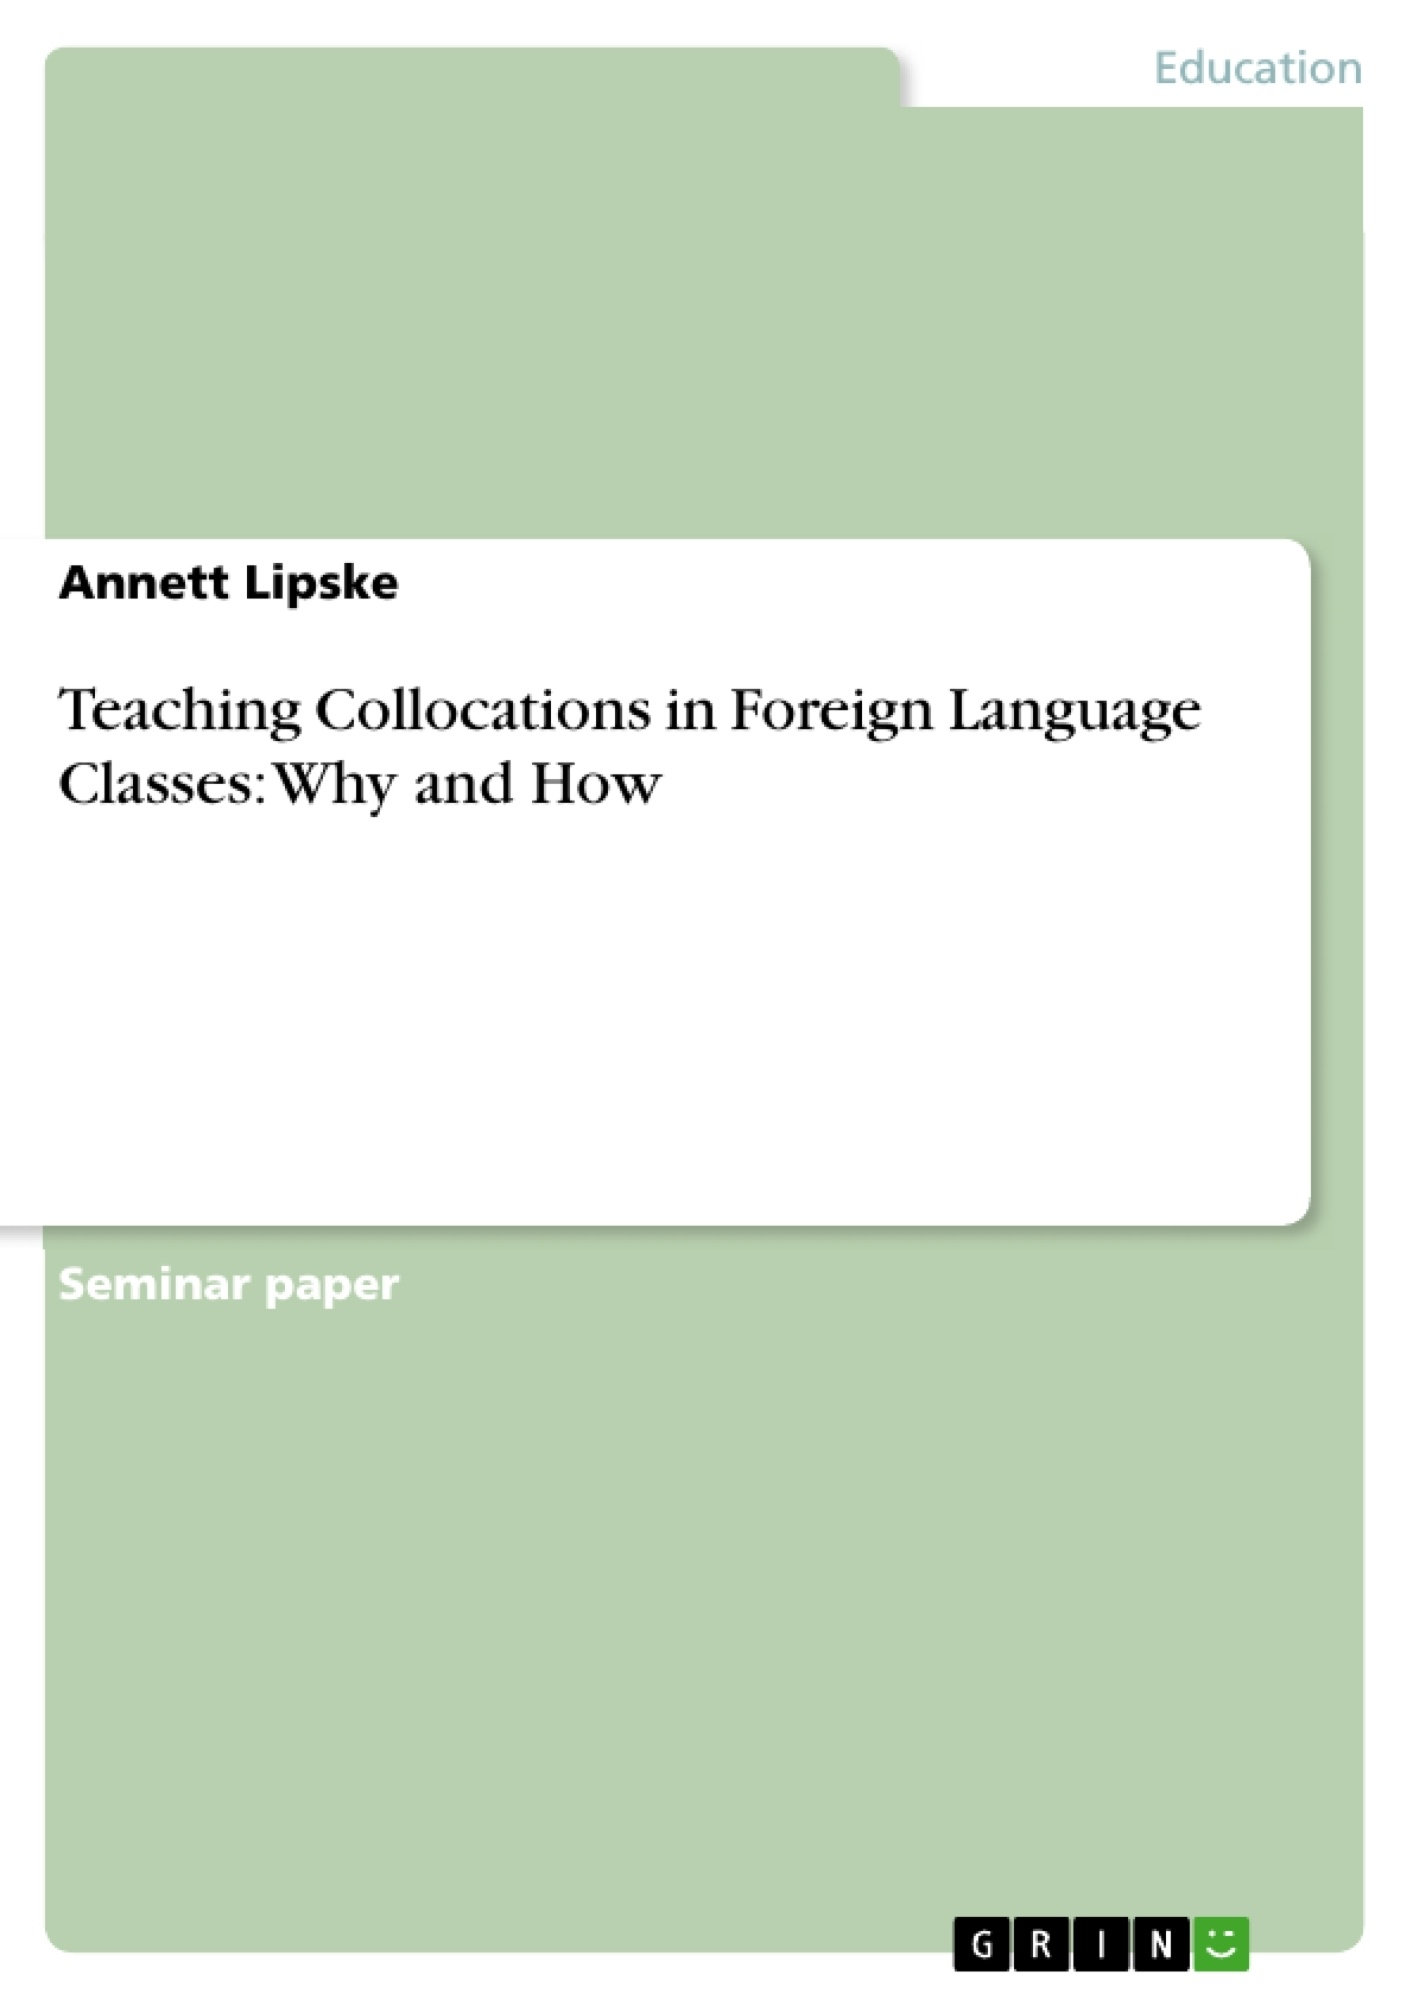 Title: Teaching Collocations in Foreign Language Classes: Why and How